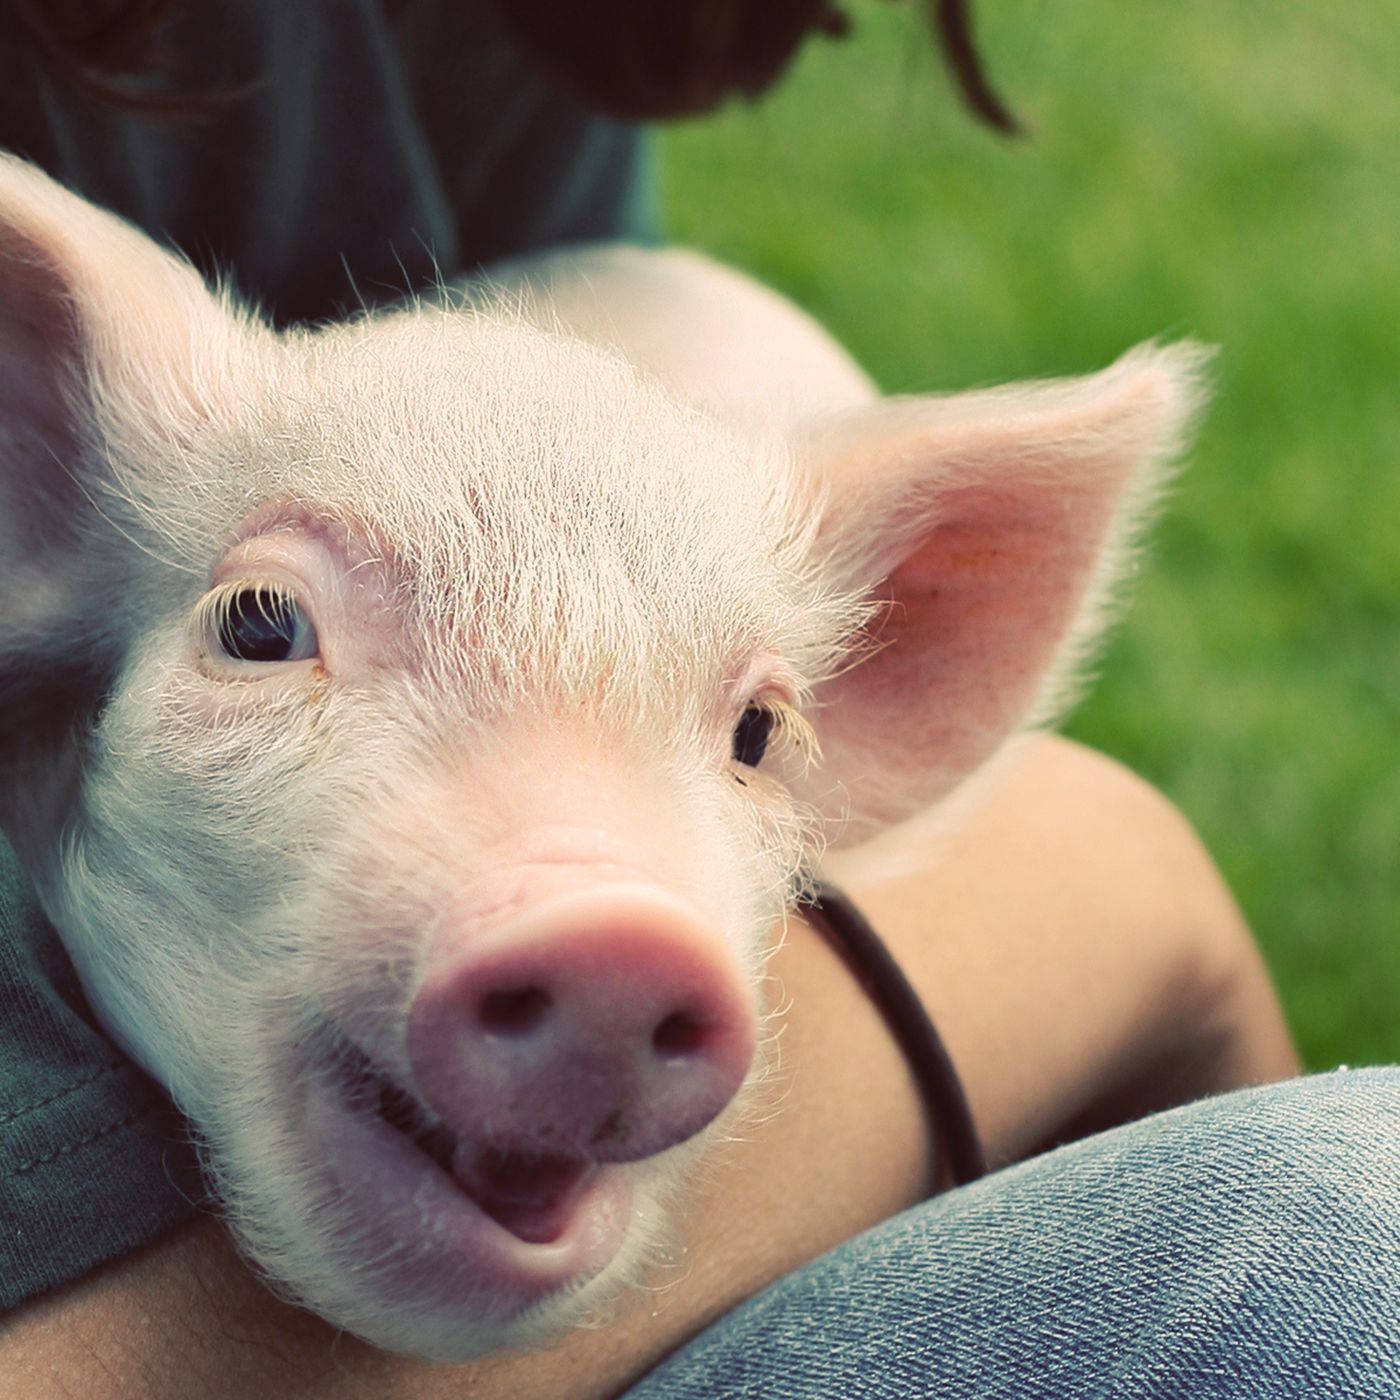 The Best Charities For Helping Animals Vox